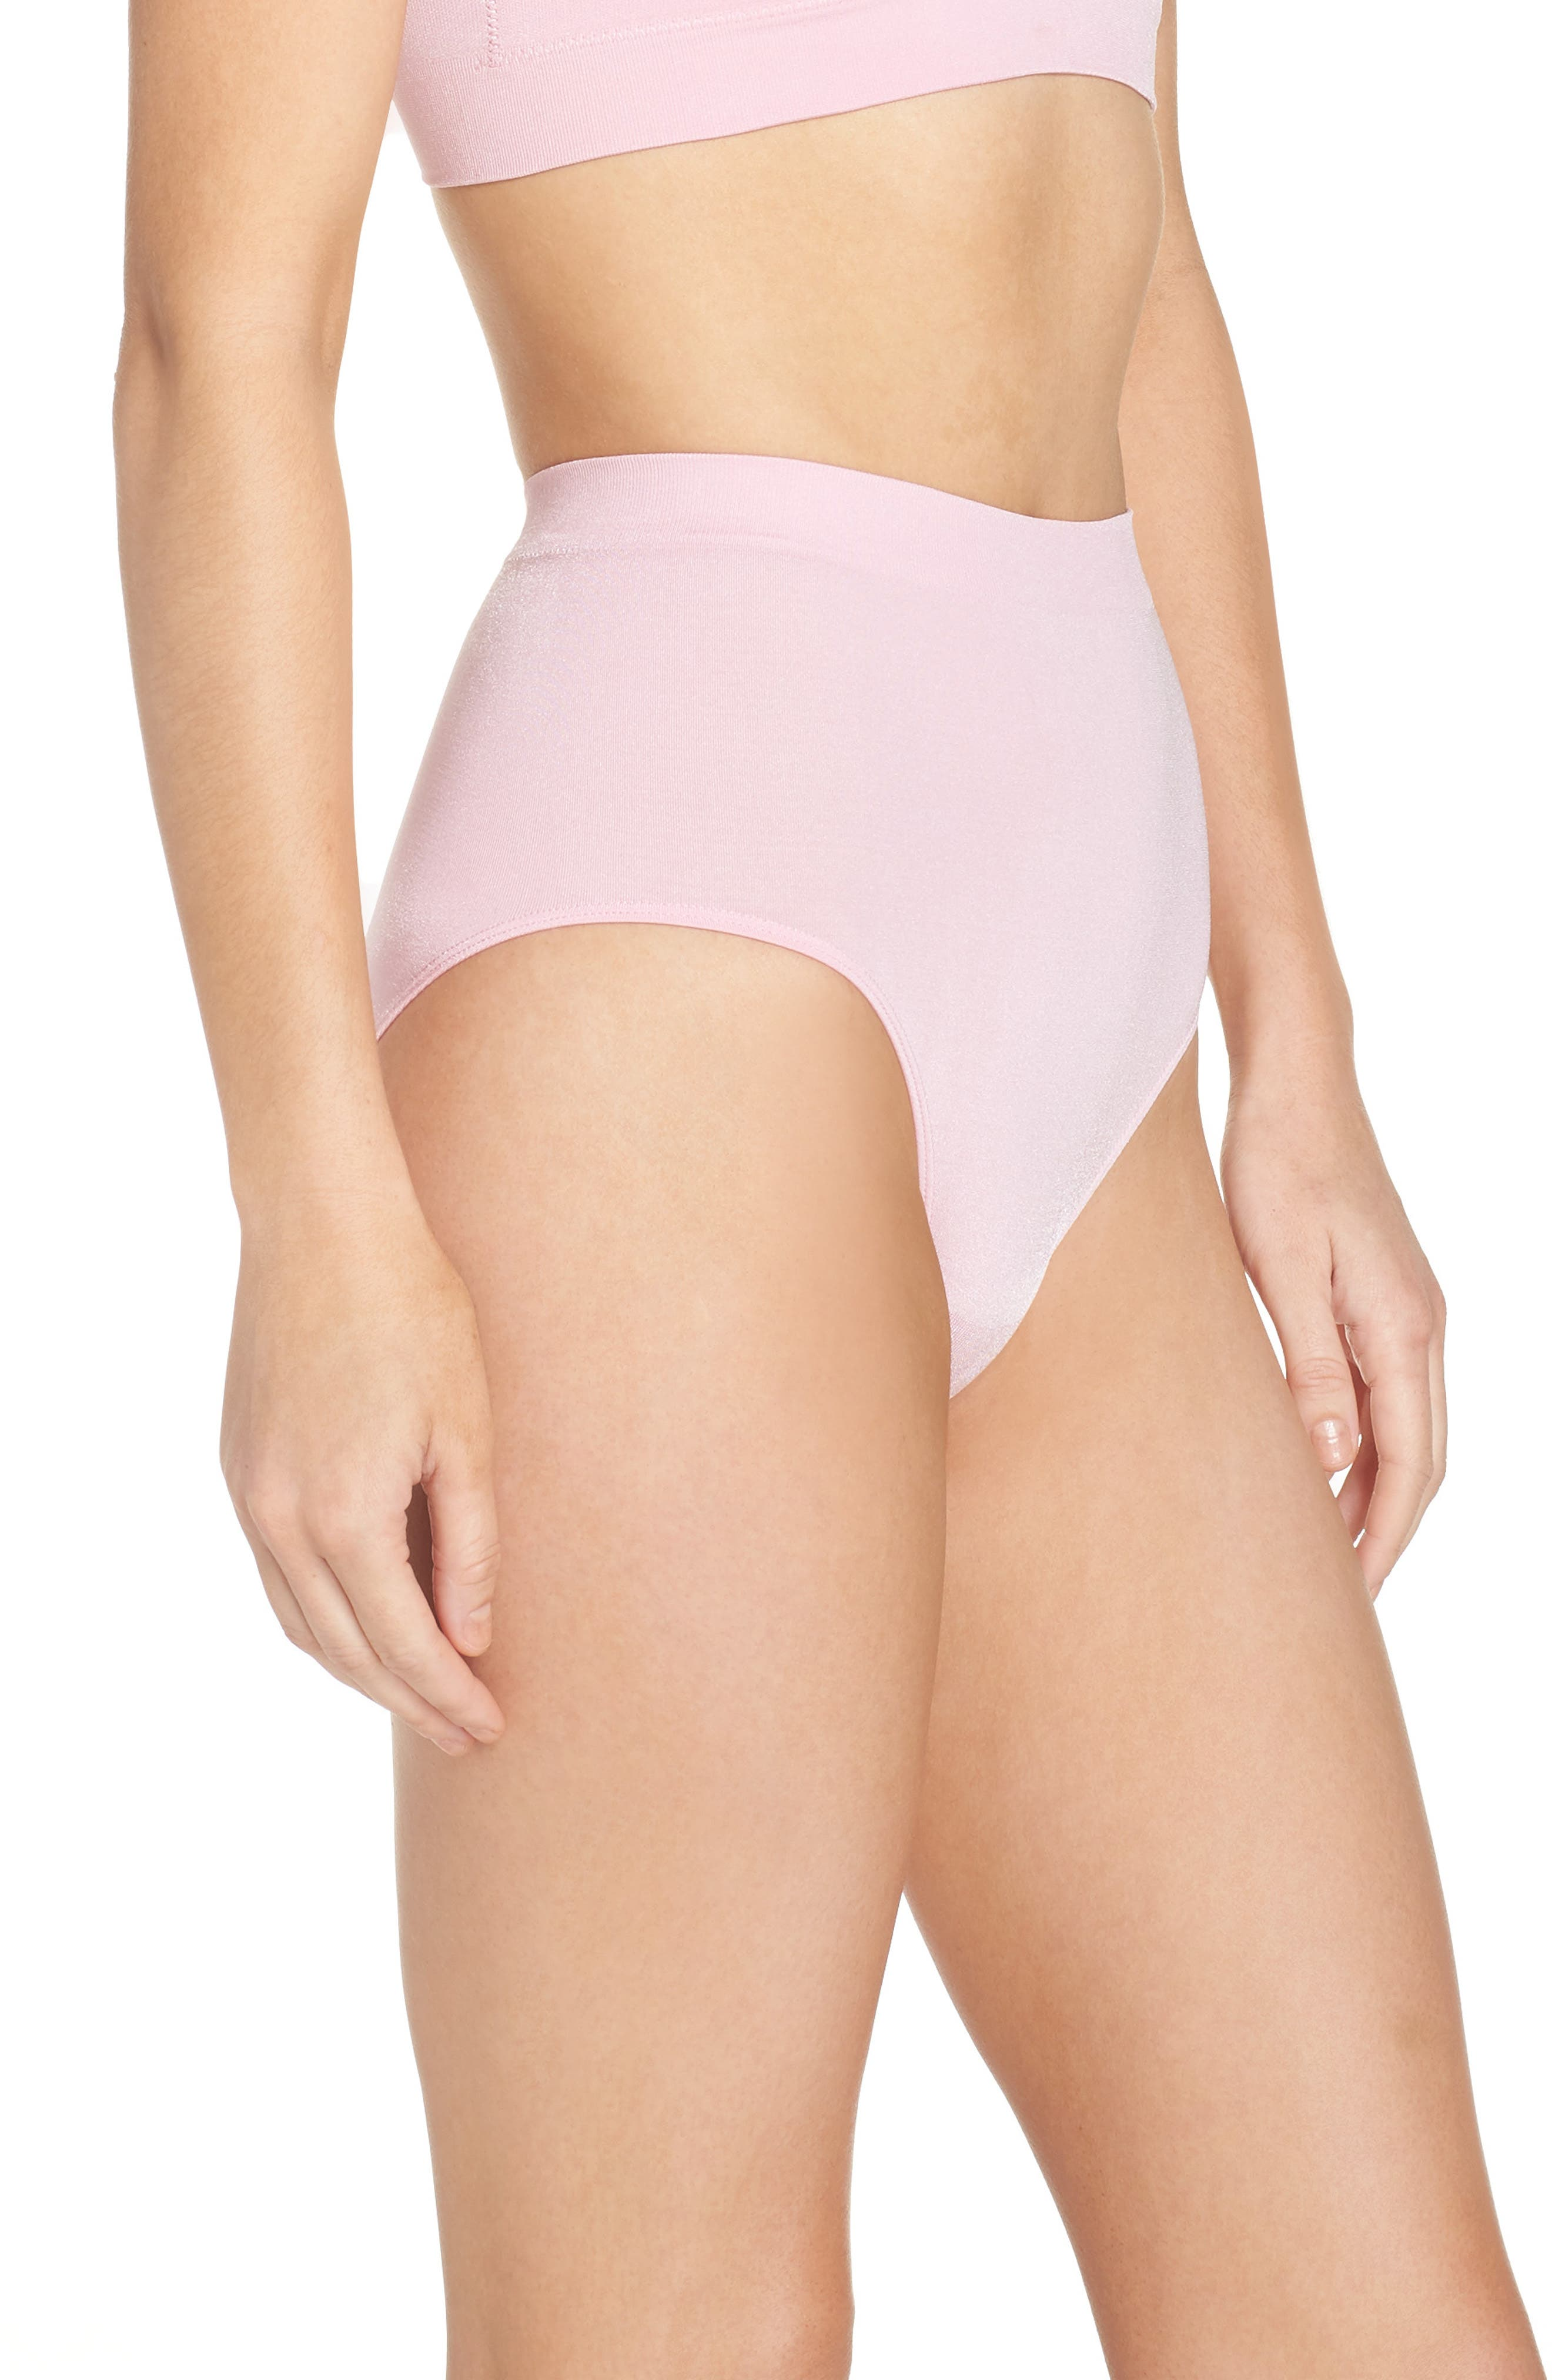 B Smooth Briefs,                             Alternate thumbnail 3, color,                             Cameo Pink